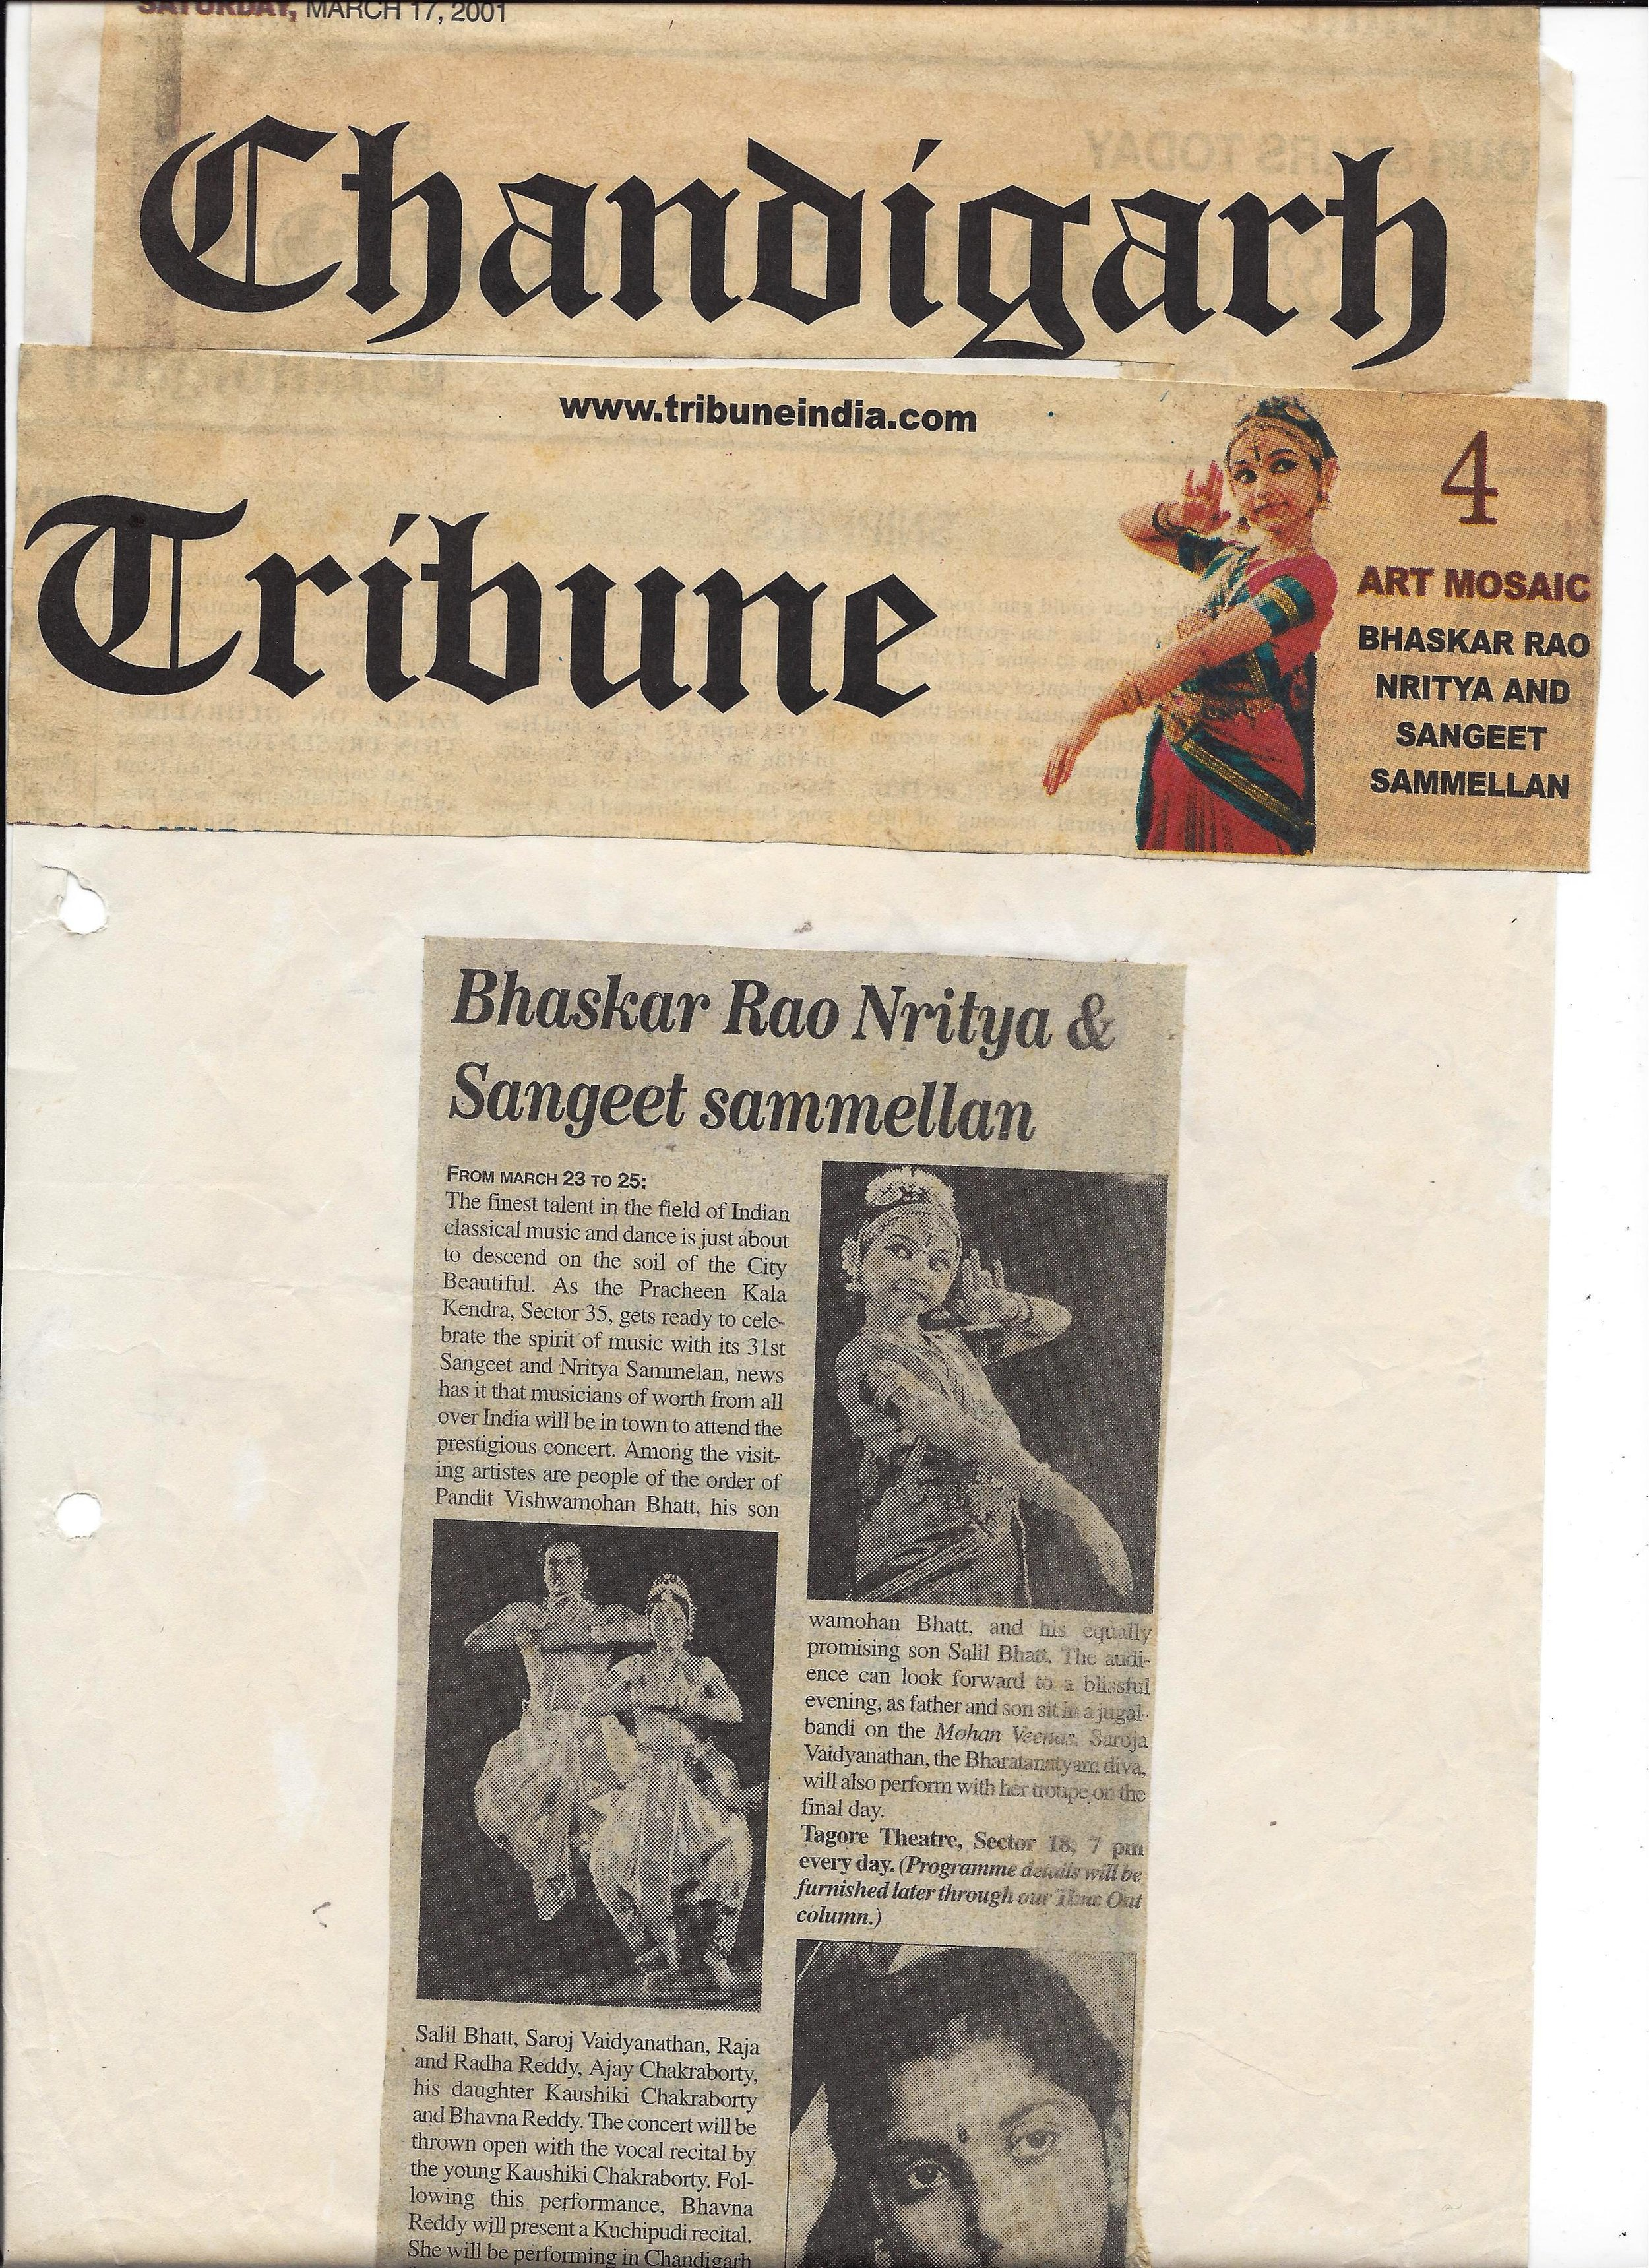 Chandigarh Tribune 2001